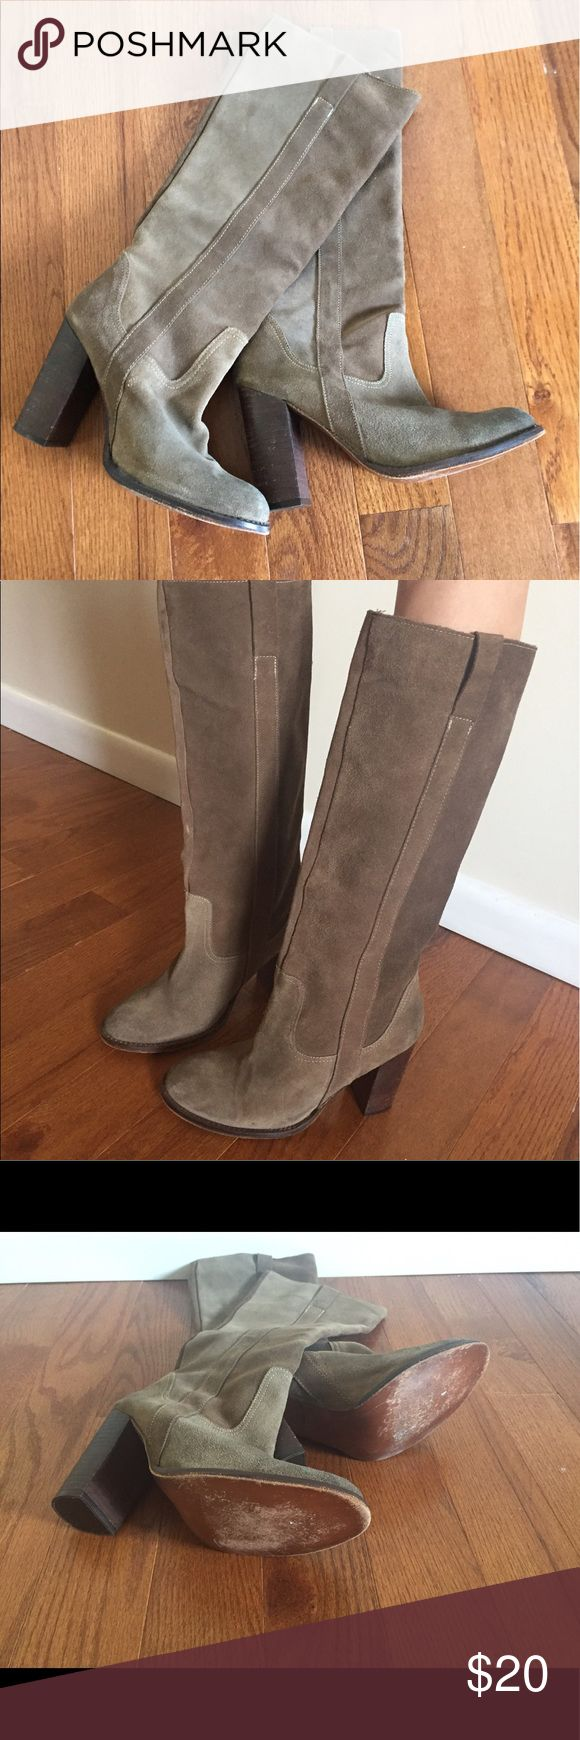 """Suede Steve Madden boots Lightly worn moss green, suede Steve Madden boots. hits just below knee with a 4"""" wooden heel. Minimal worn look on heal and a small mark on the front of the right foot. The leg area is slender so made to fit a thin leg. Size 10 Steve Madden Shoes Heeled Boots"""